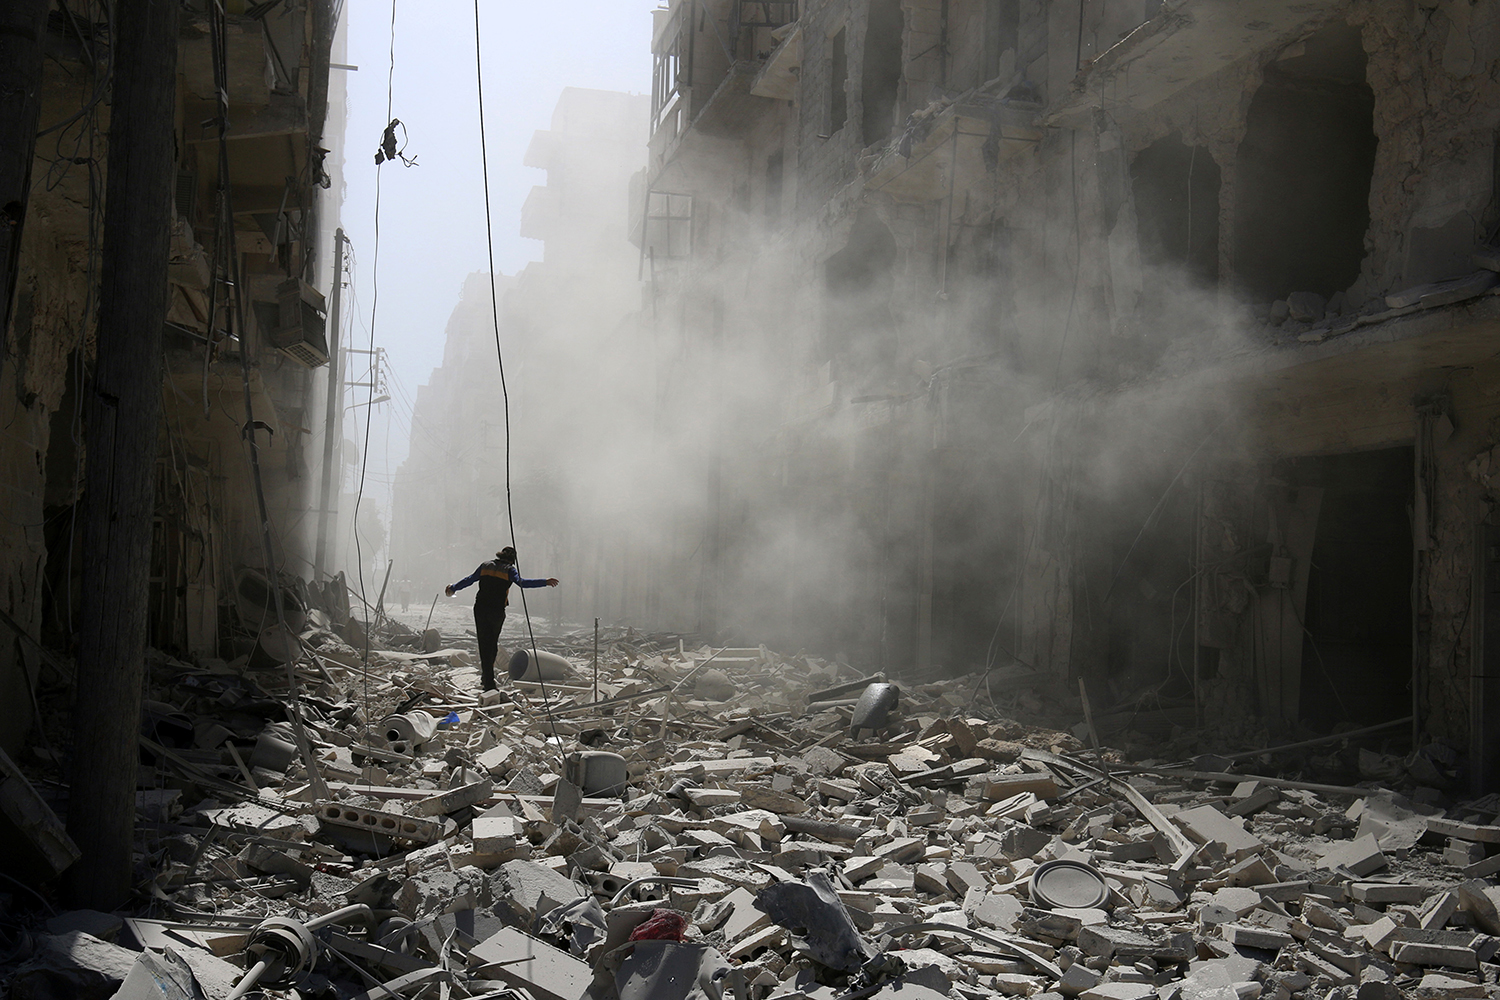 ALEPPO 2016-09-25 A man walks on the rubble of damaged buildings after an airstrike on the rebel held al-Qaterji neighbourhood of Aleppo, Syria September 25, 2016. REUTERS/Abdalrhman Ismail TPX IMAGES OF THE DAY Photo: / REUTERS / TT / kod 72000